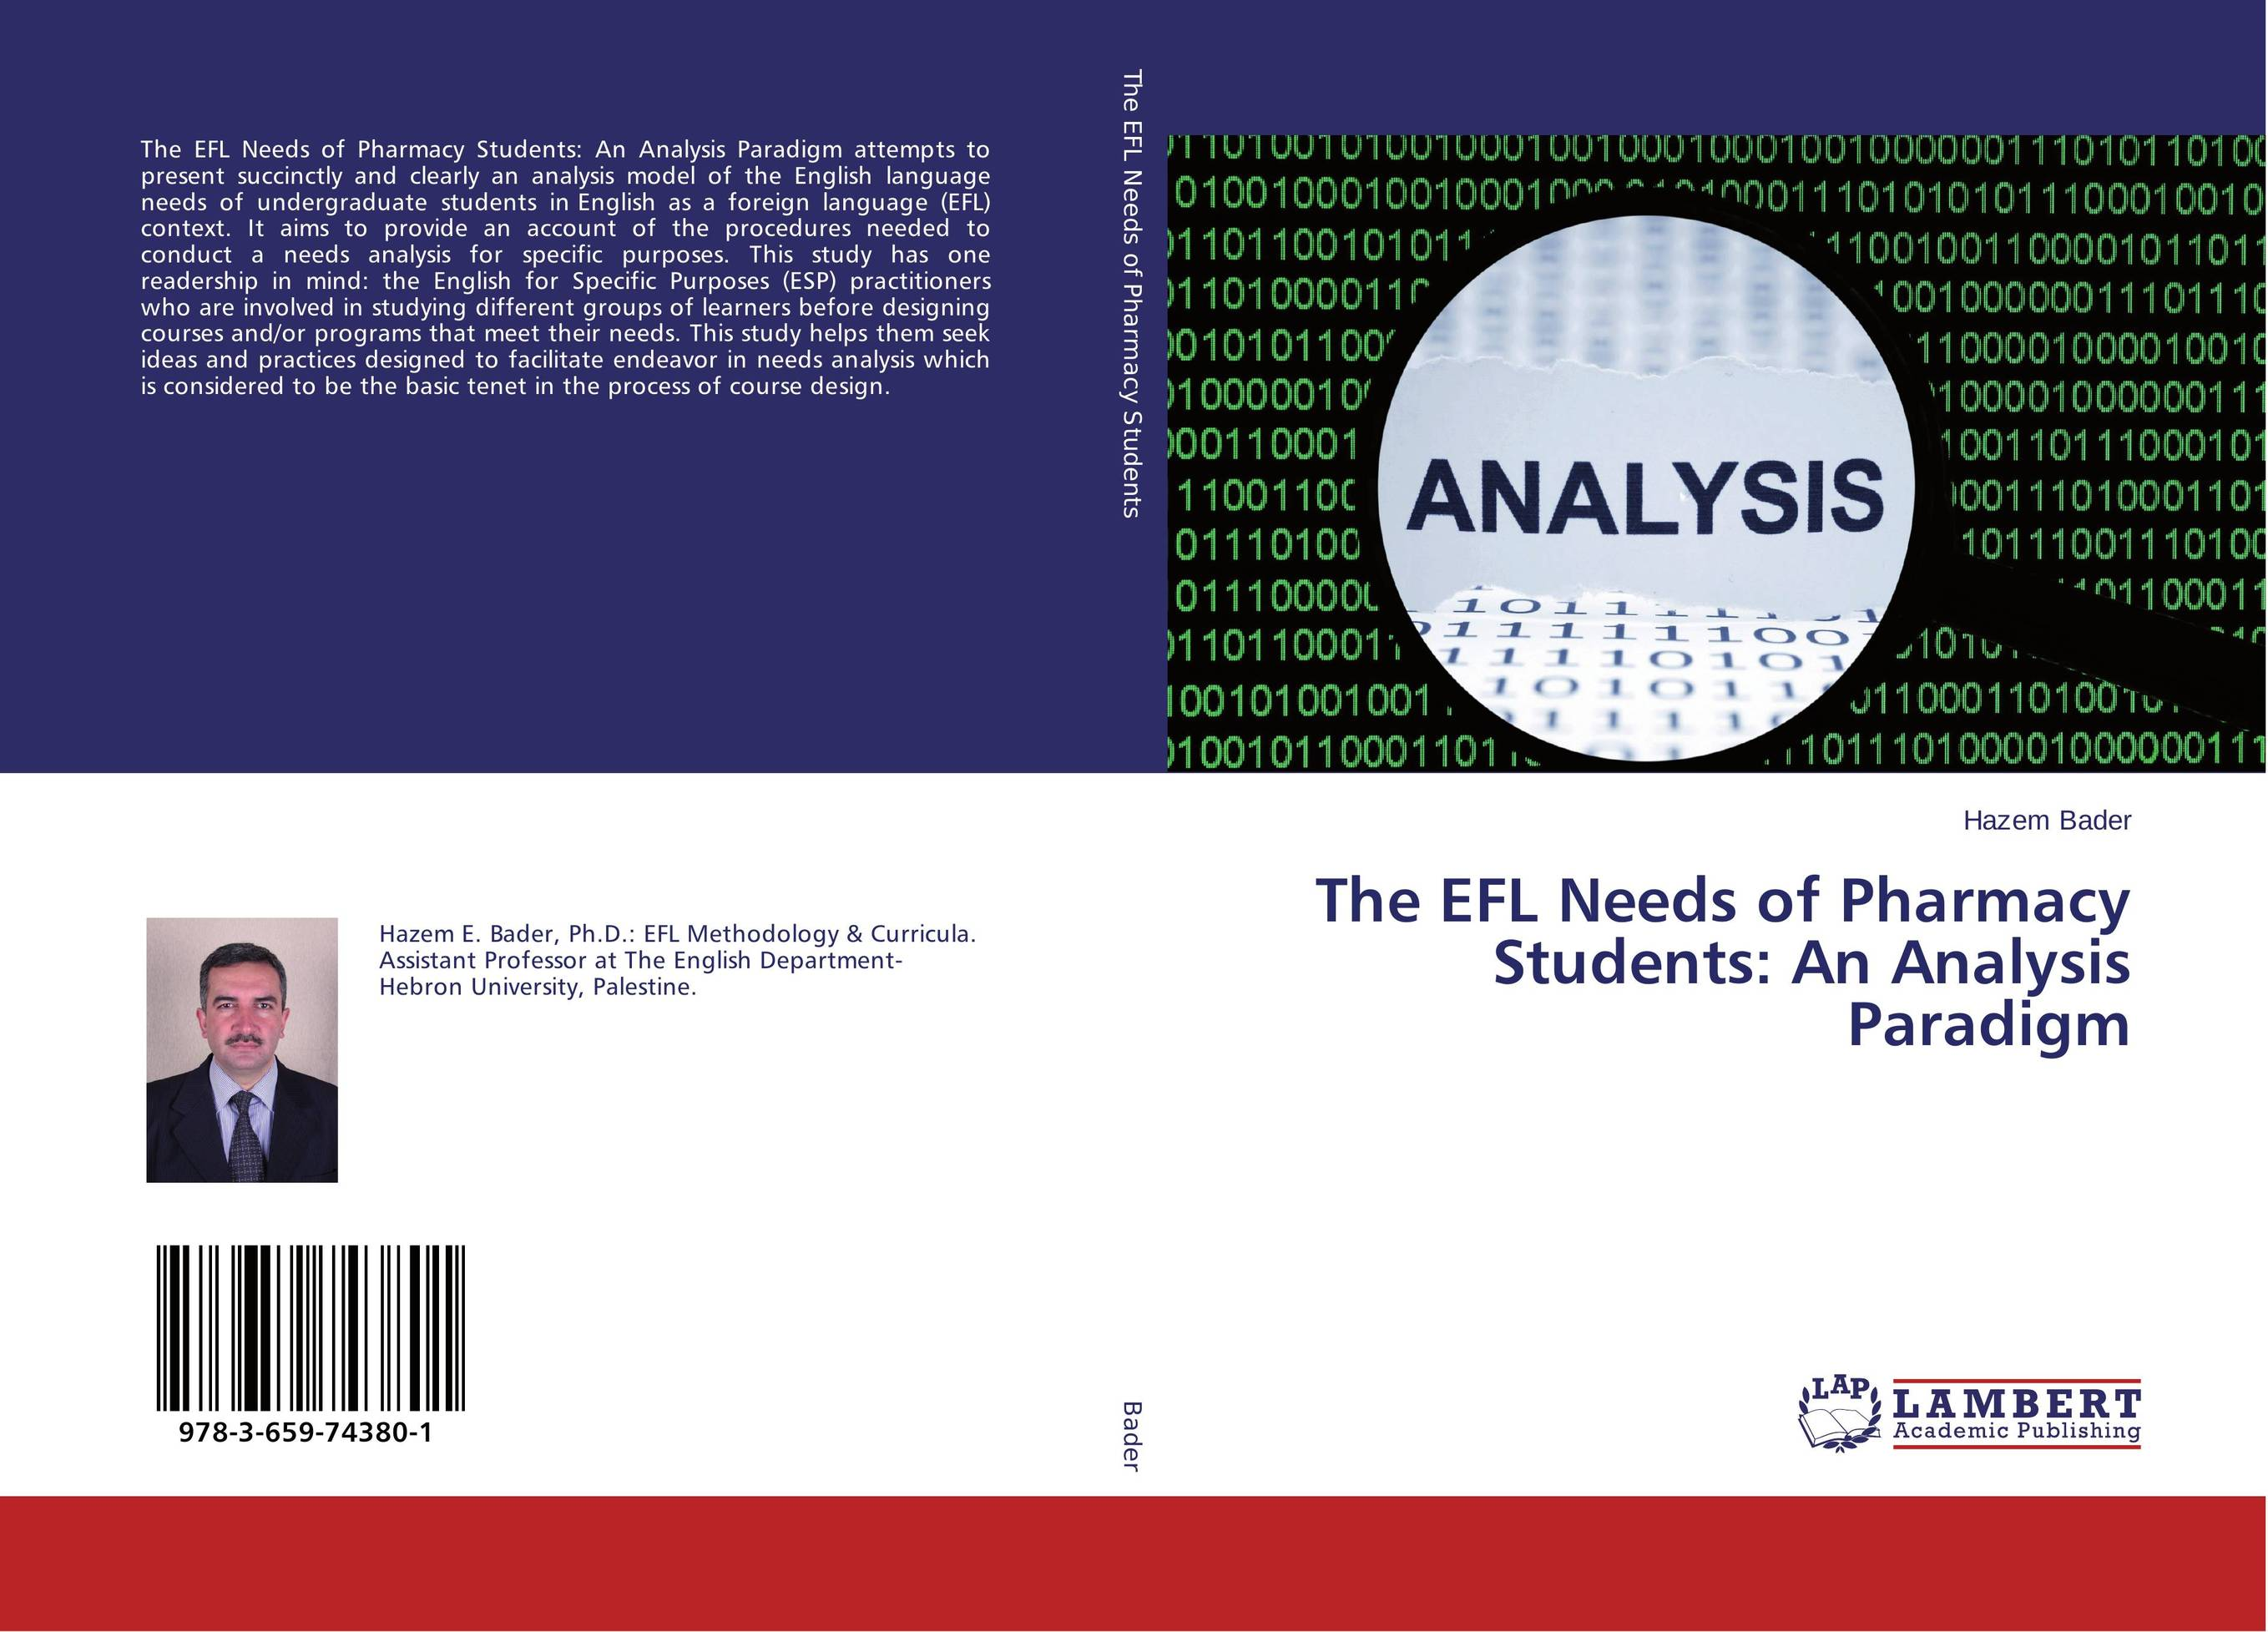 The EFL Needs of Pharmacy Students: An Analysis Paradigm